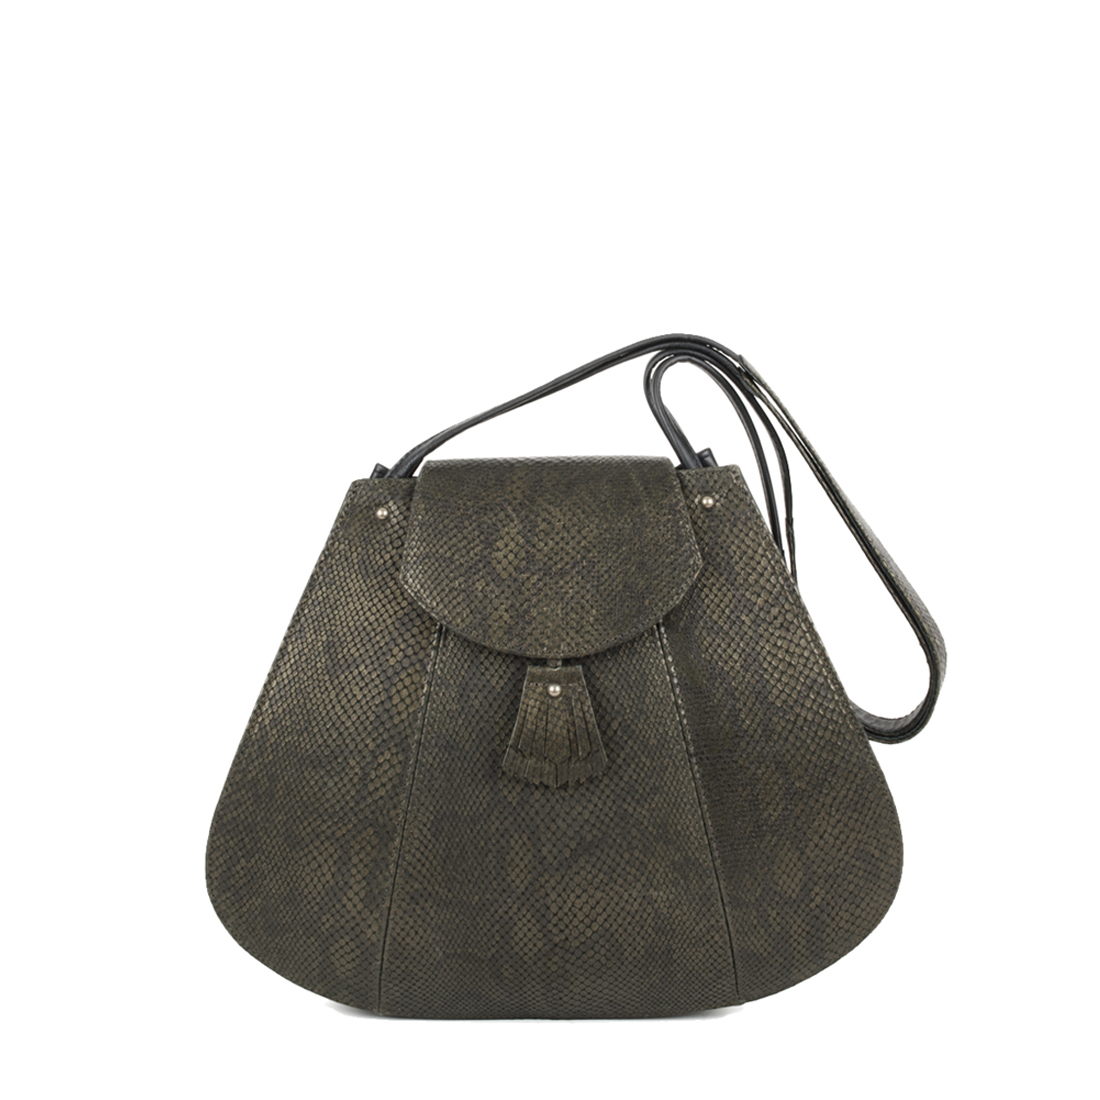 Frances Olive Snake Print Leather Shoulder Bag